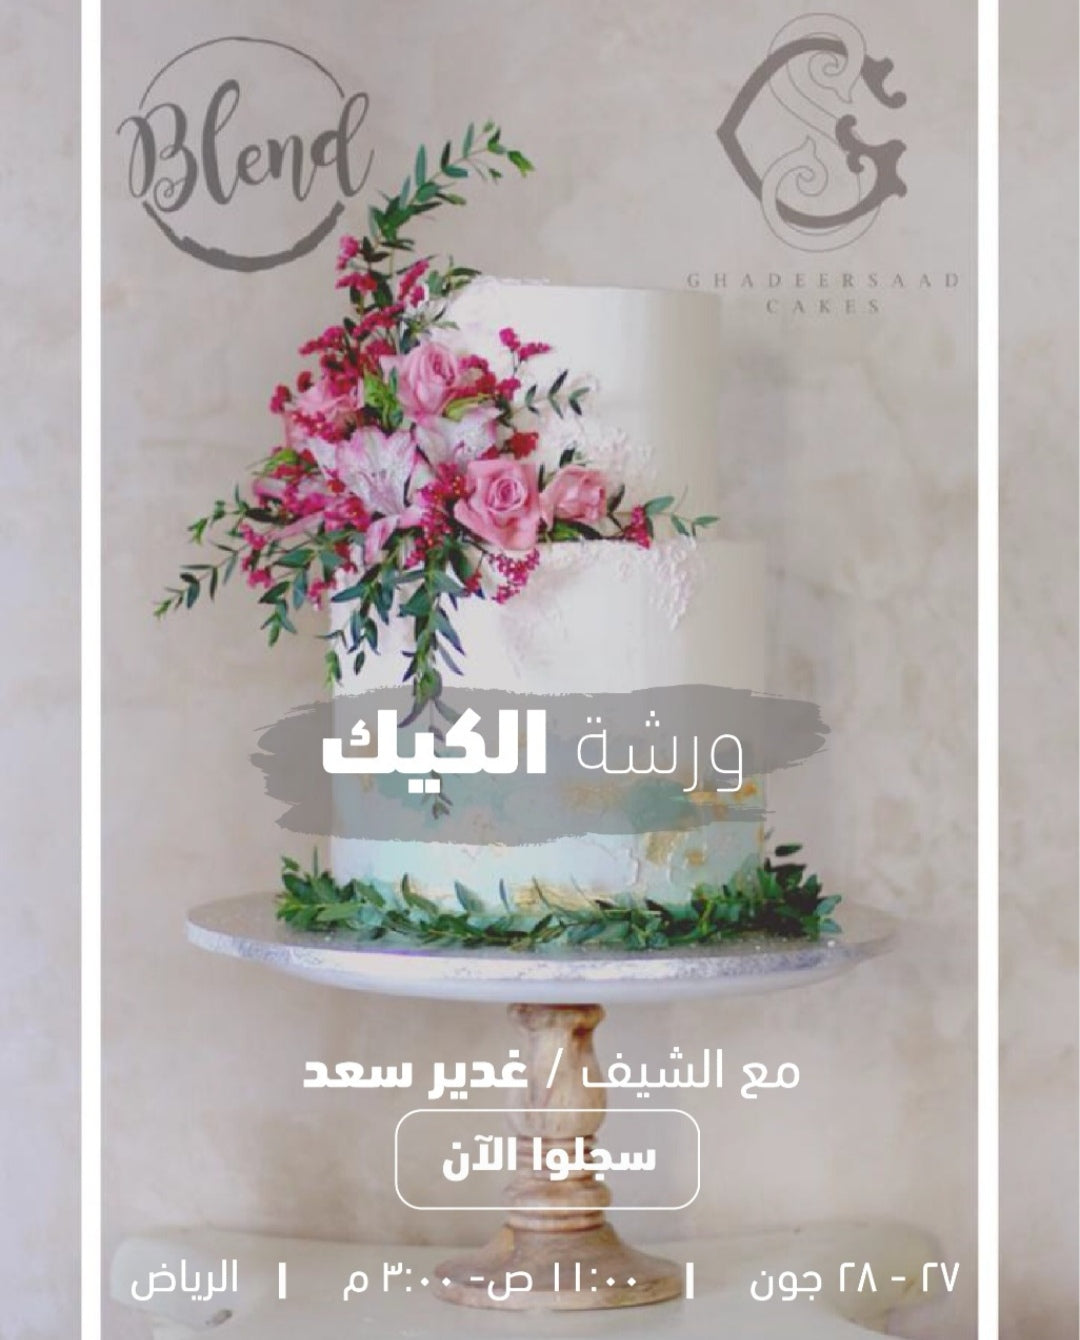 The Cake Class (27 to 28 June 2019)